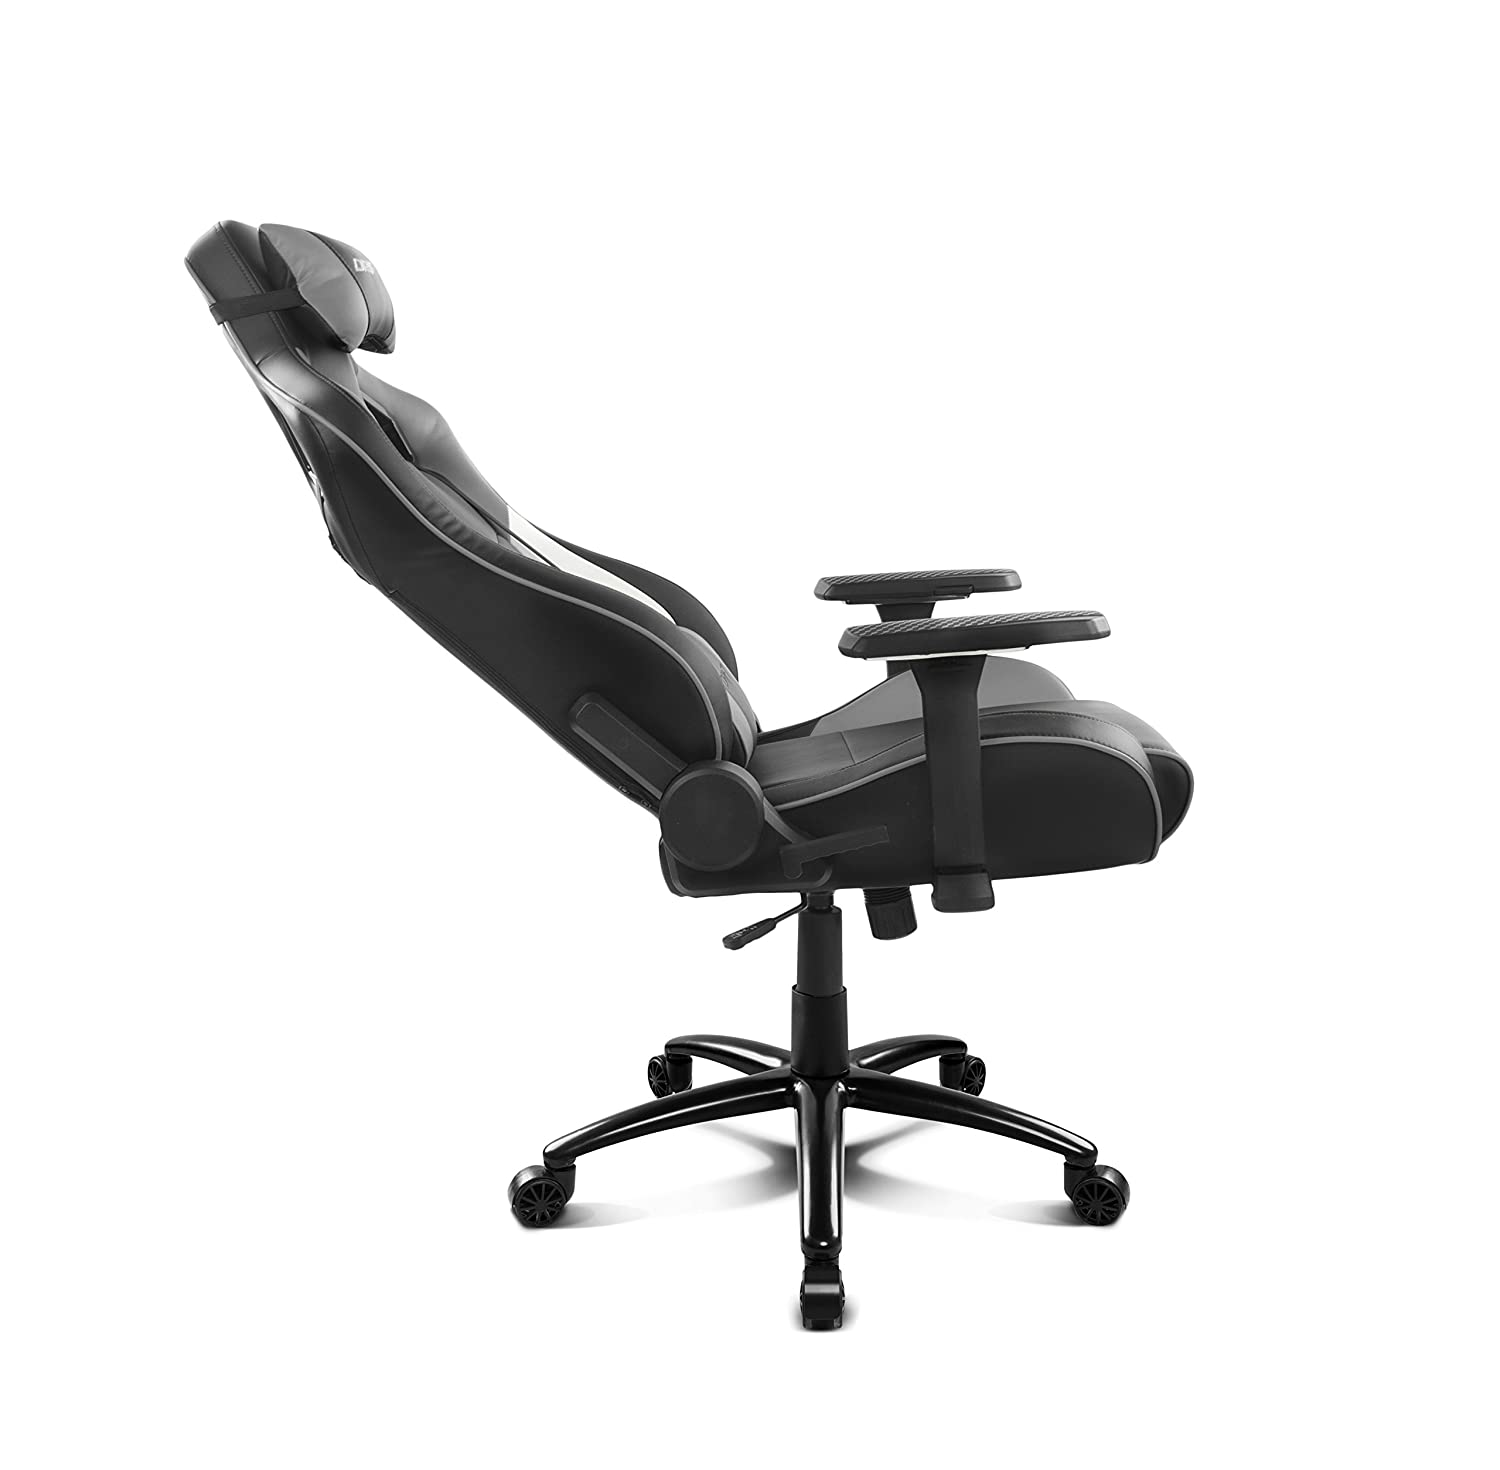 Amazon.com : Drift dr400bgy Gaming Chair - Black and Grey : Office ...